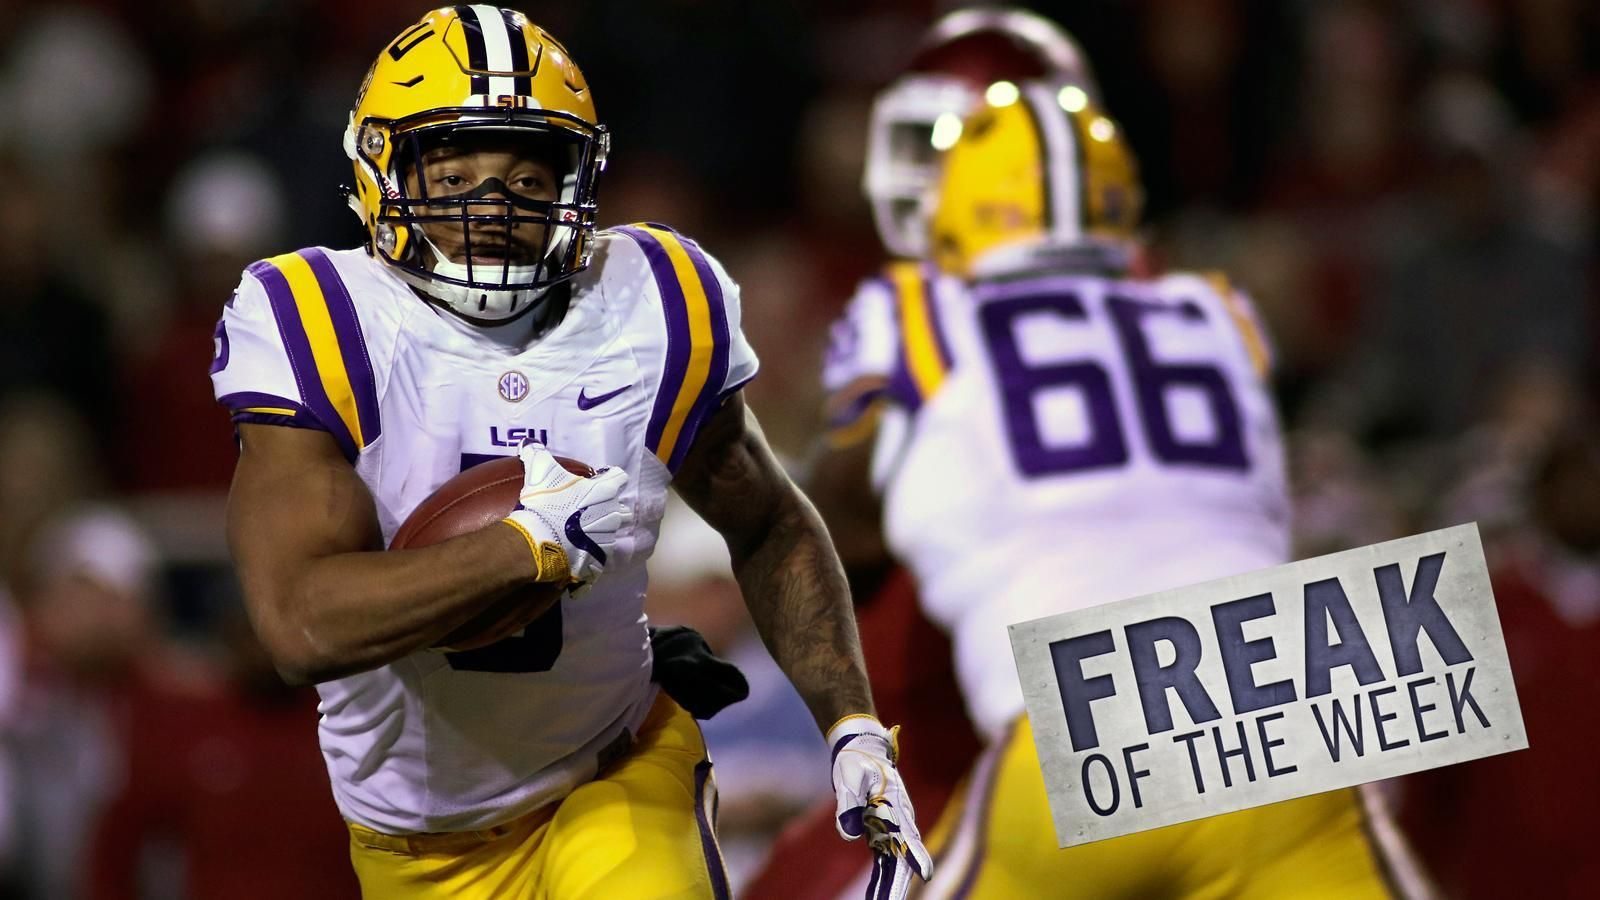 Tebow's Freak of the Week: Derrius Guice